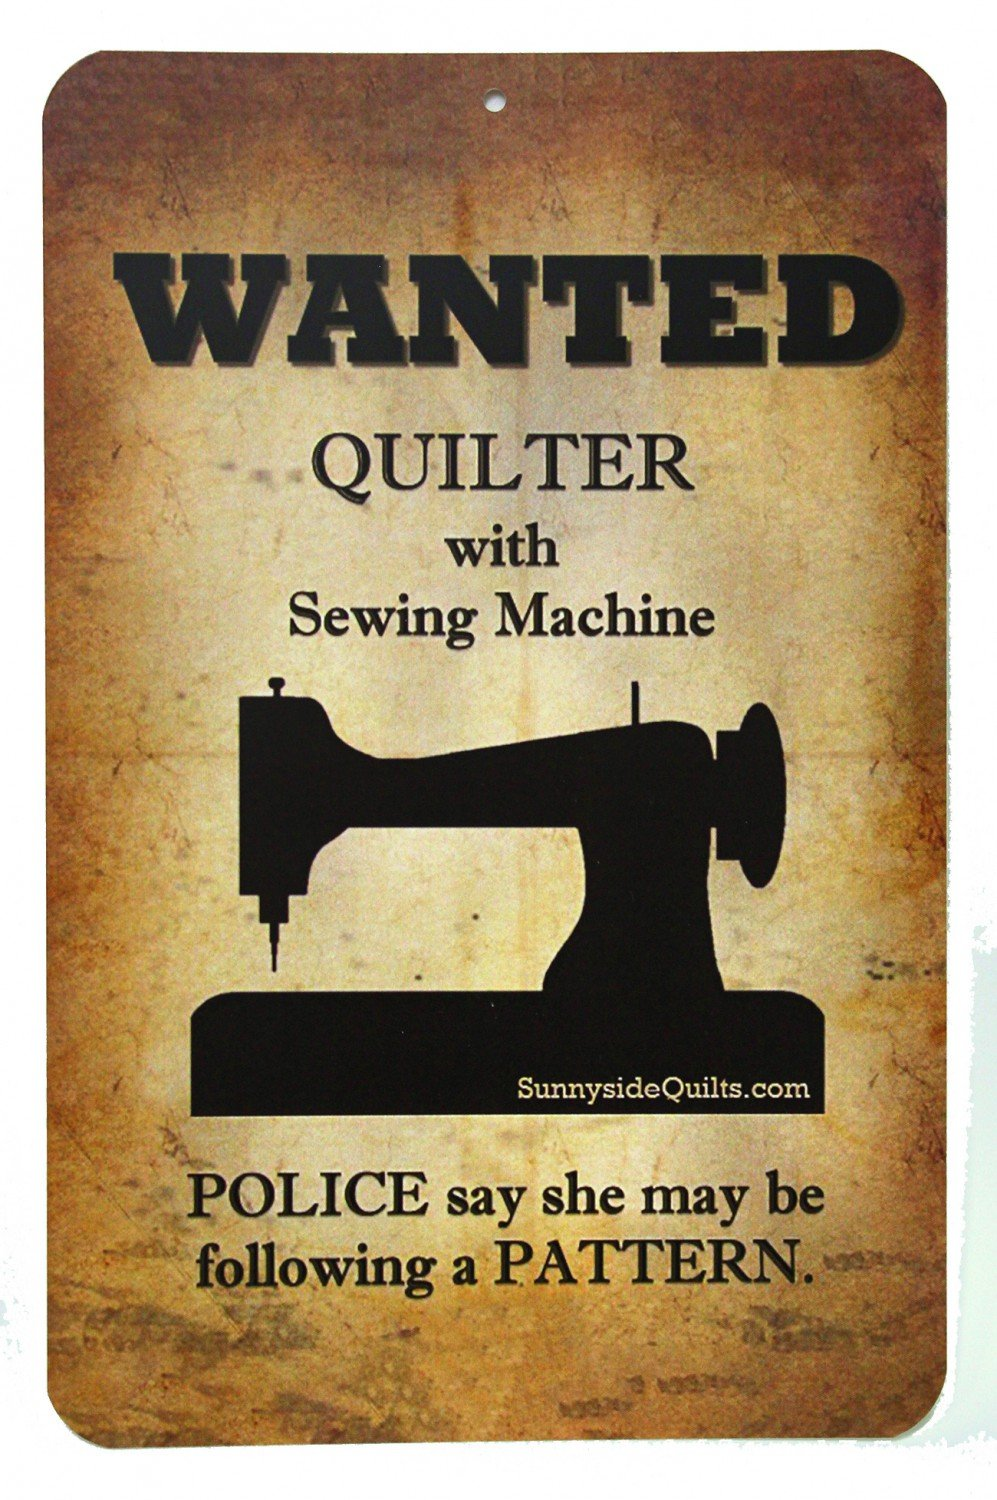 Sign - Wanted - Quilter with Sewing Machine